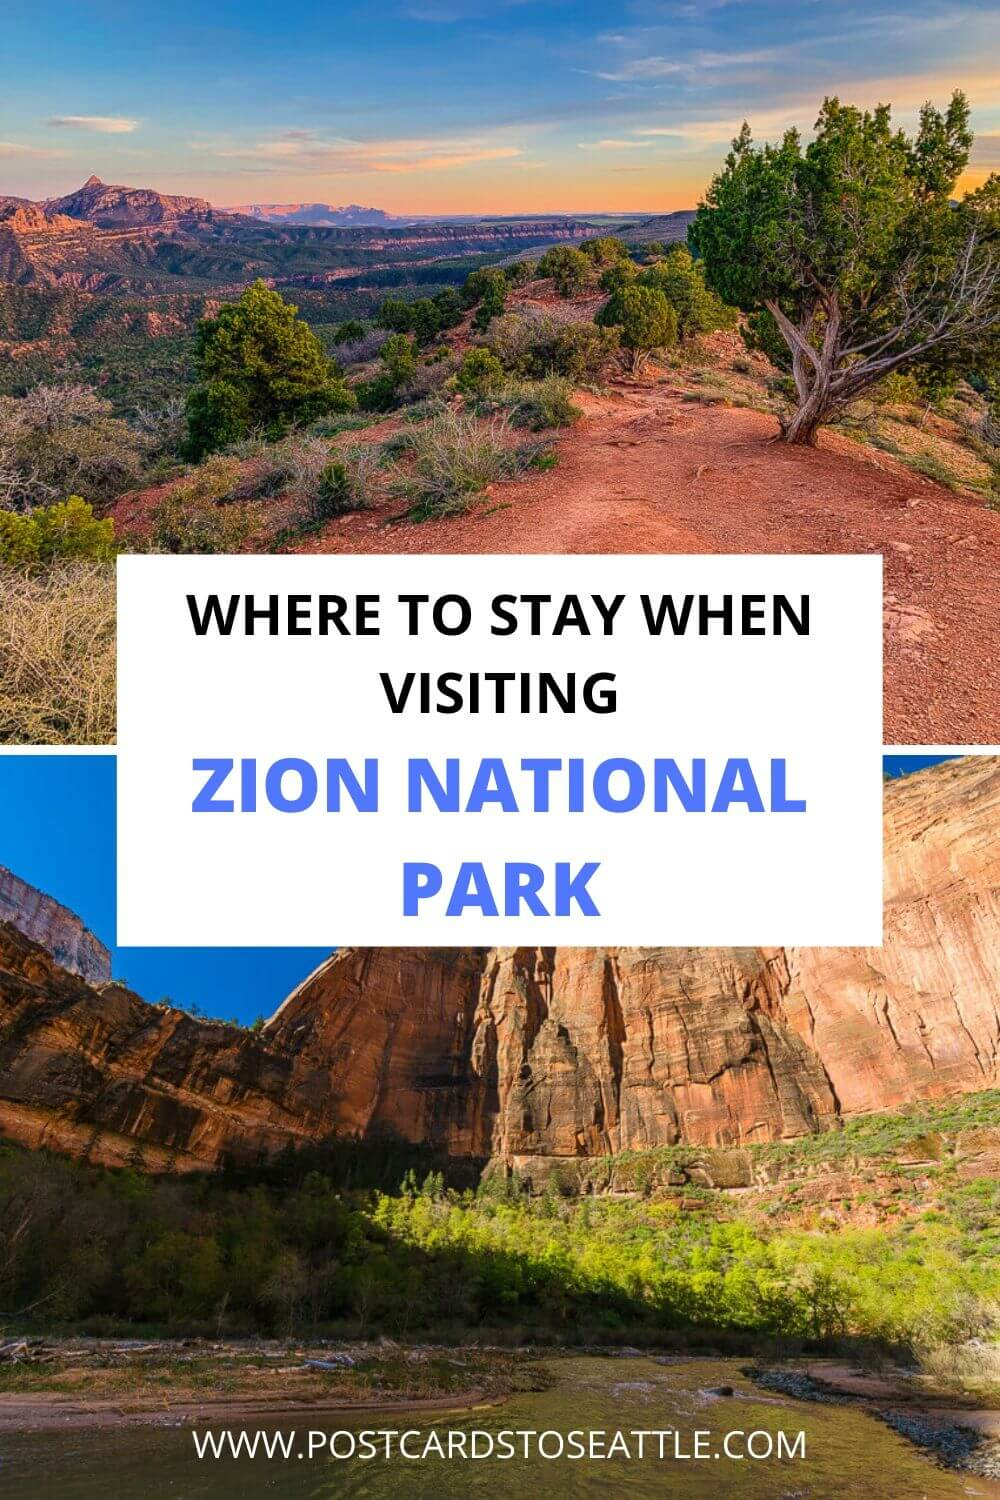 The Best Places to Stay in and Near Zion National Park